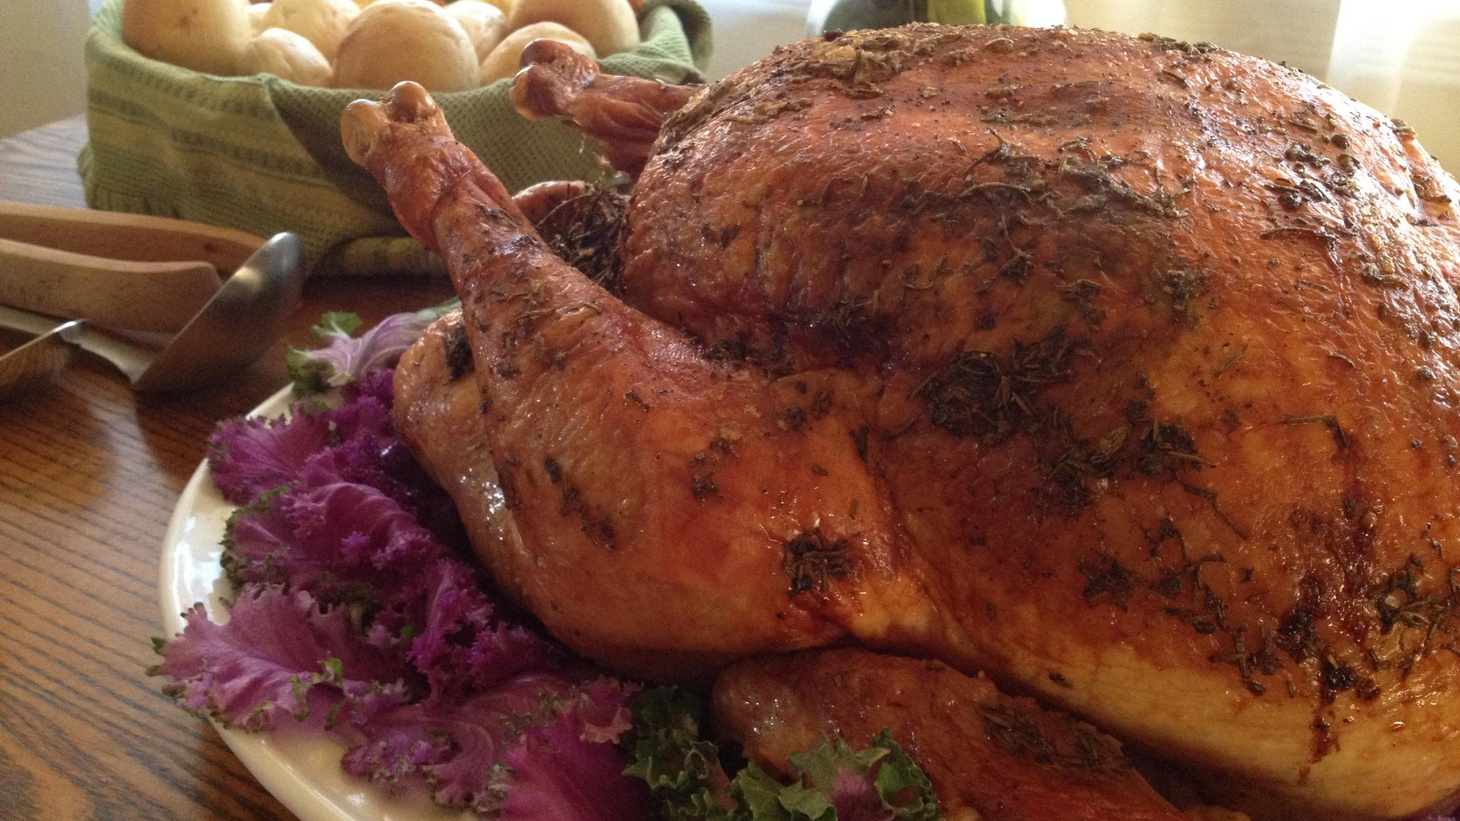 This year why not cook your Thanksgiving turkey on the grill? A BBQ expert explains how. Chef Thomas Keller looks forward to Thanksgiving leftovers.